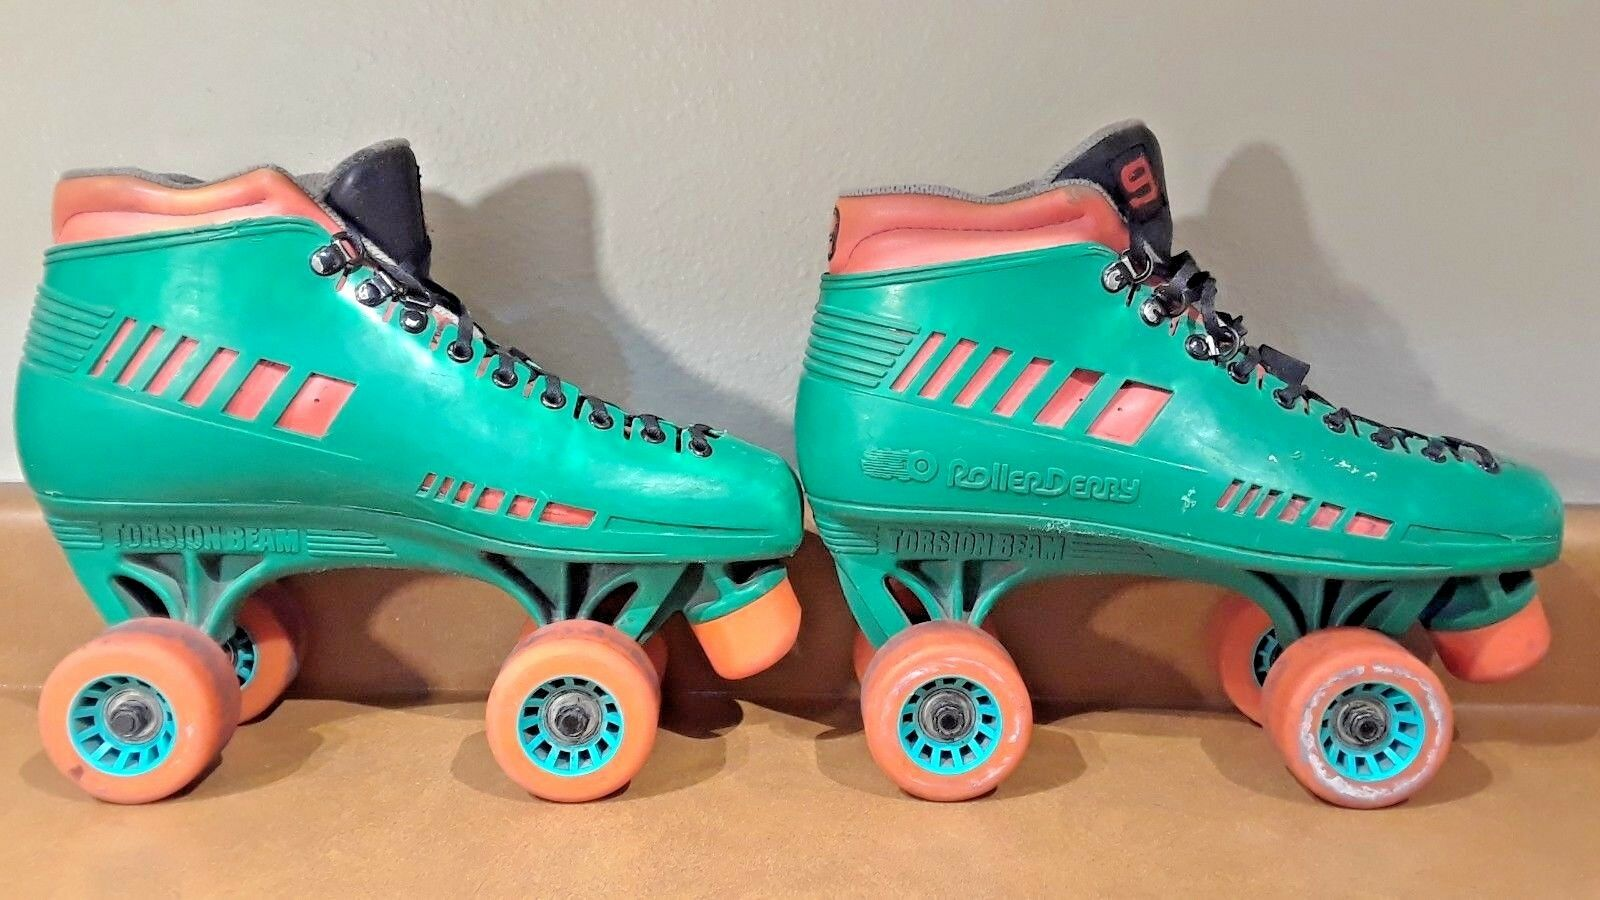 Roller Old Derby Torsion Beam Old Roller School Hipster Grün/Orange Roller Skates SIZE 9 59e722